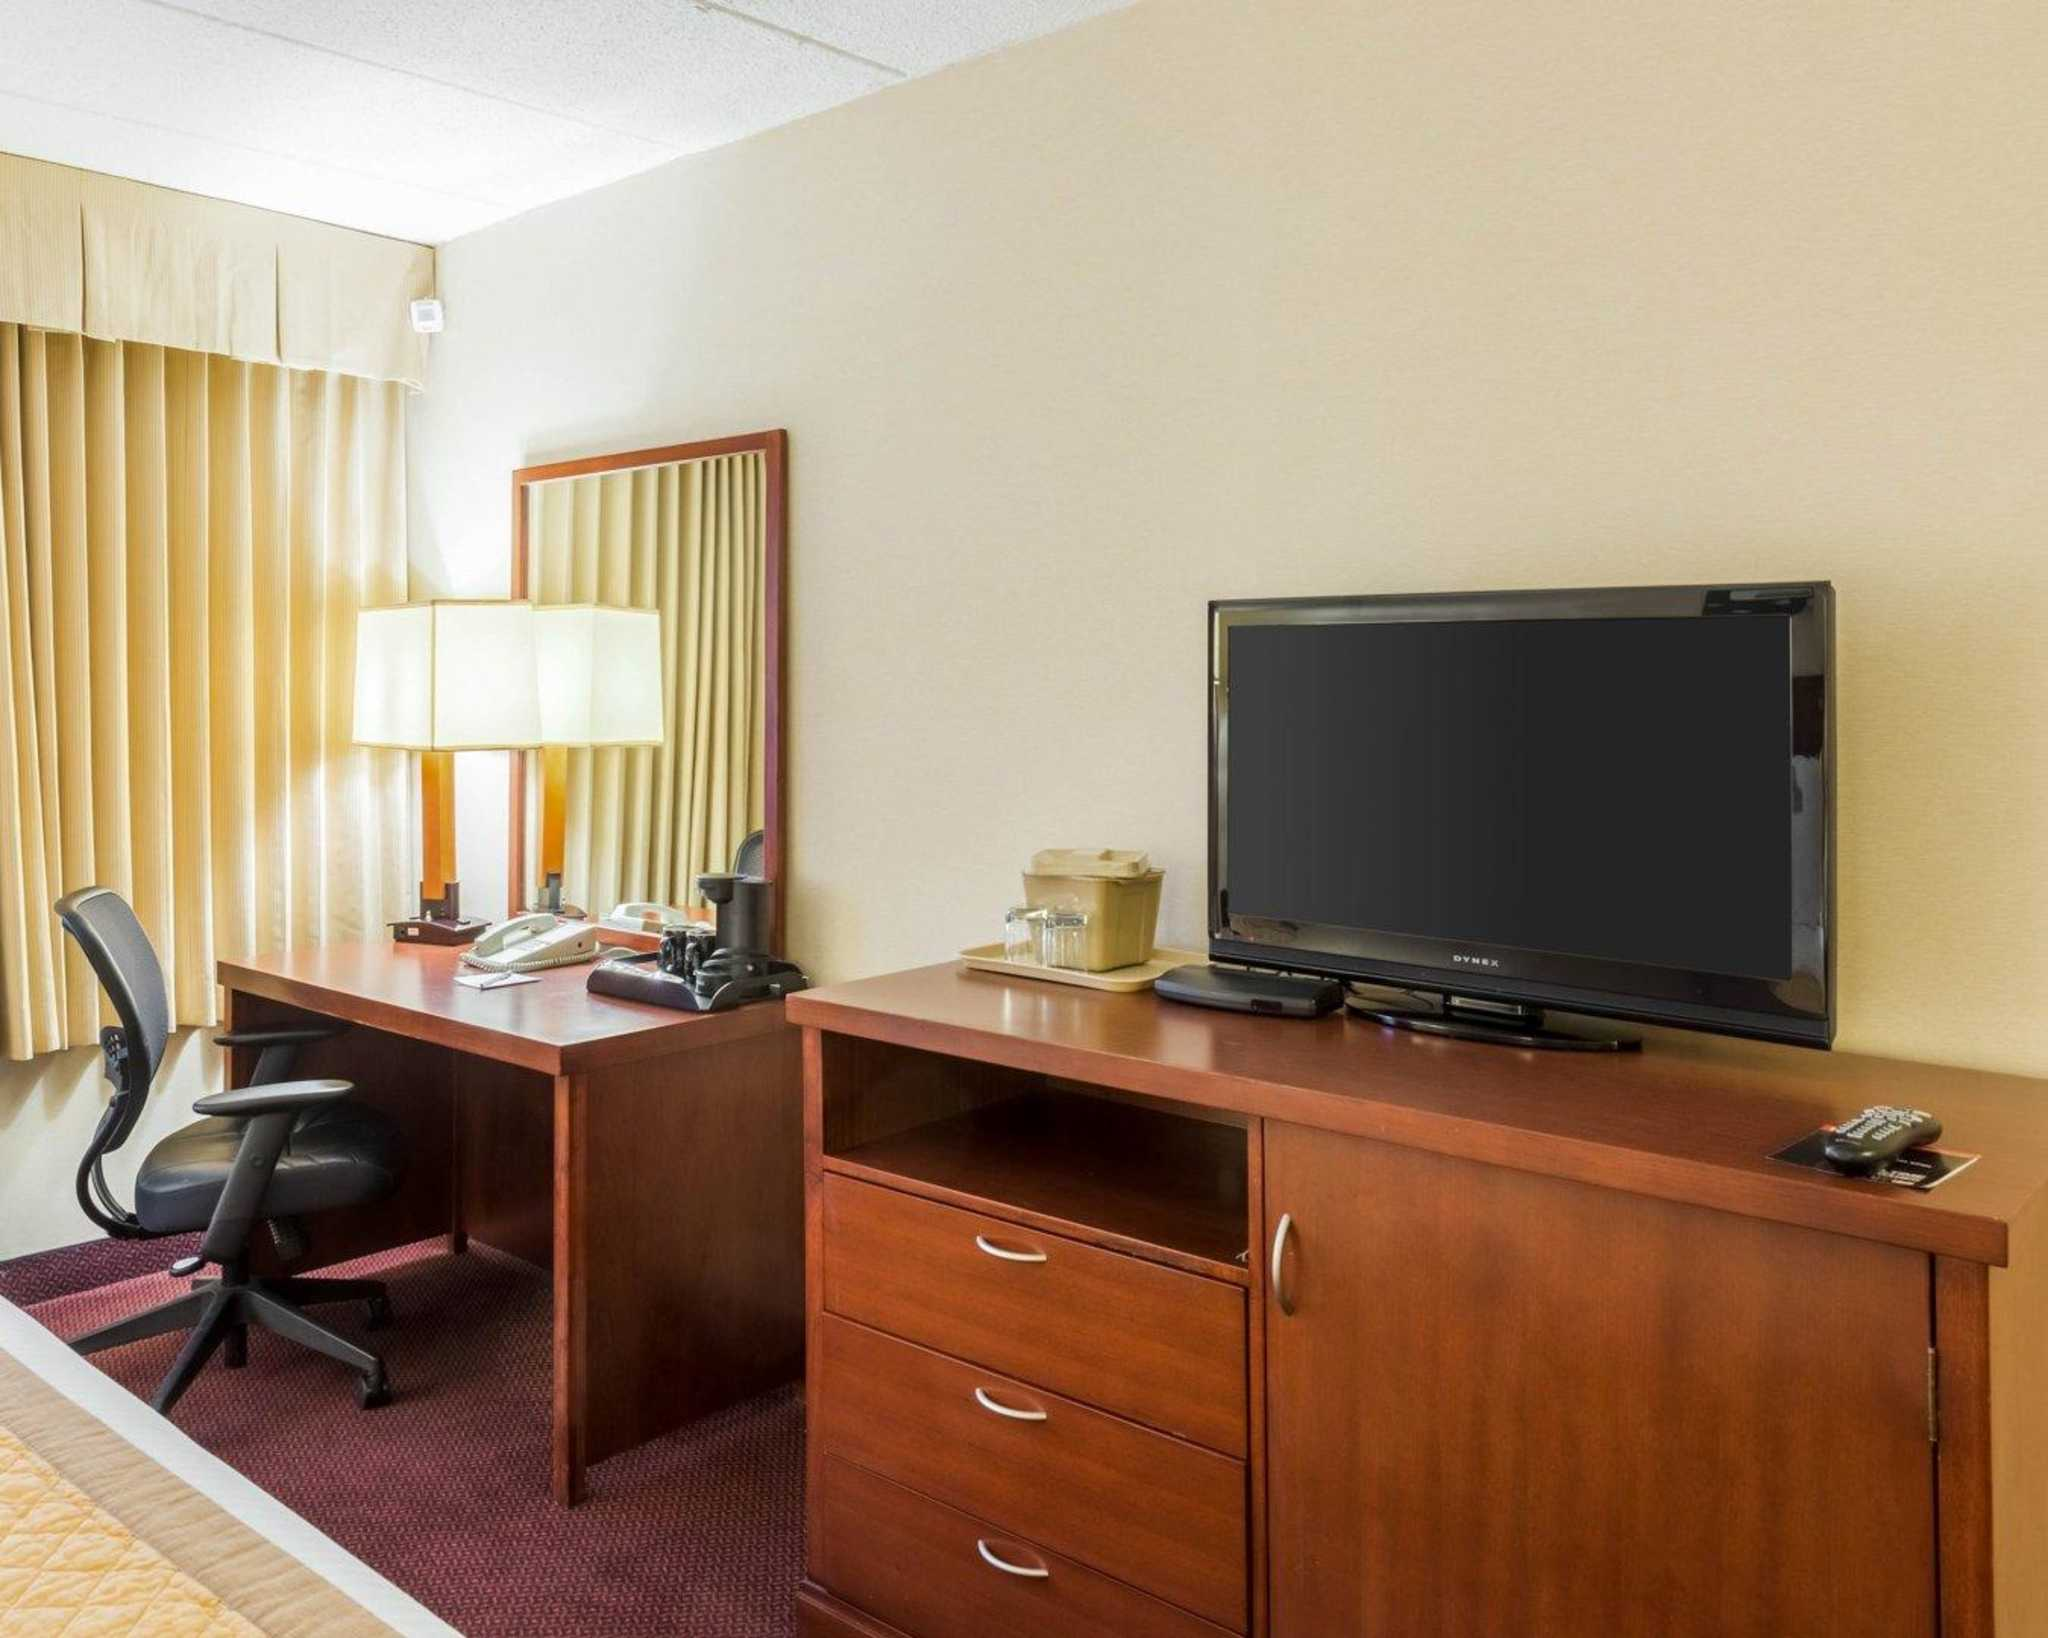 Clarion Hotel image 6